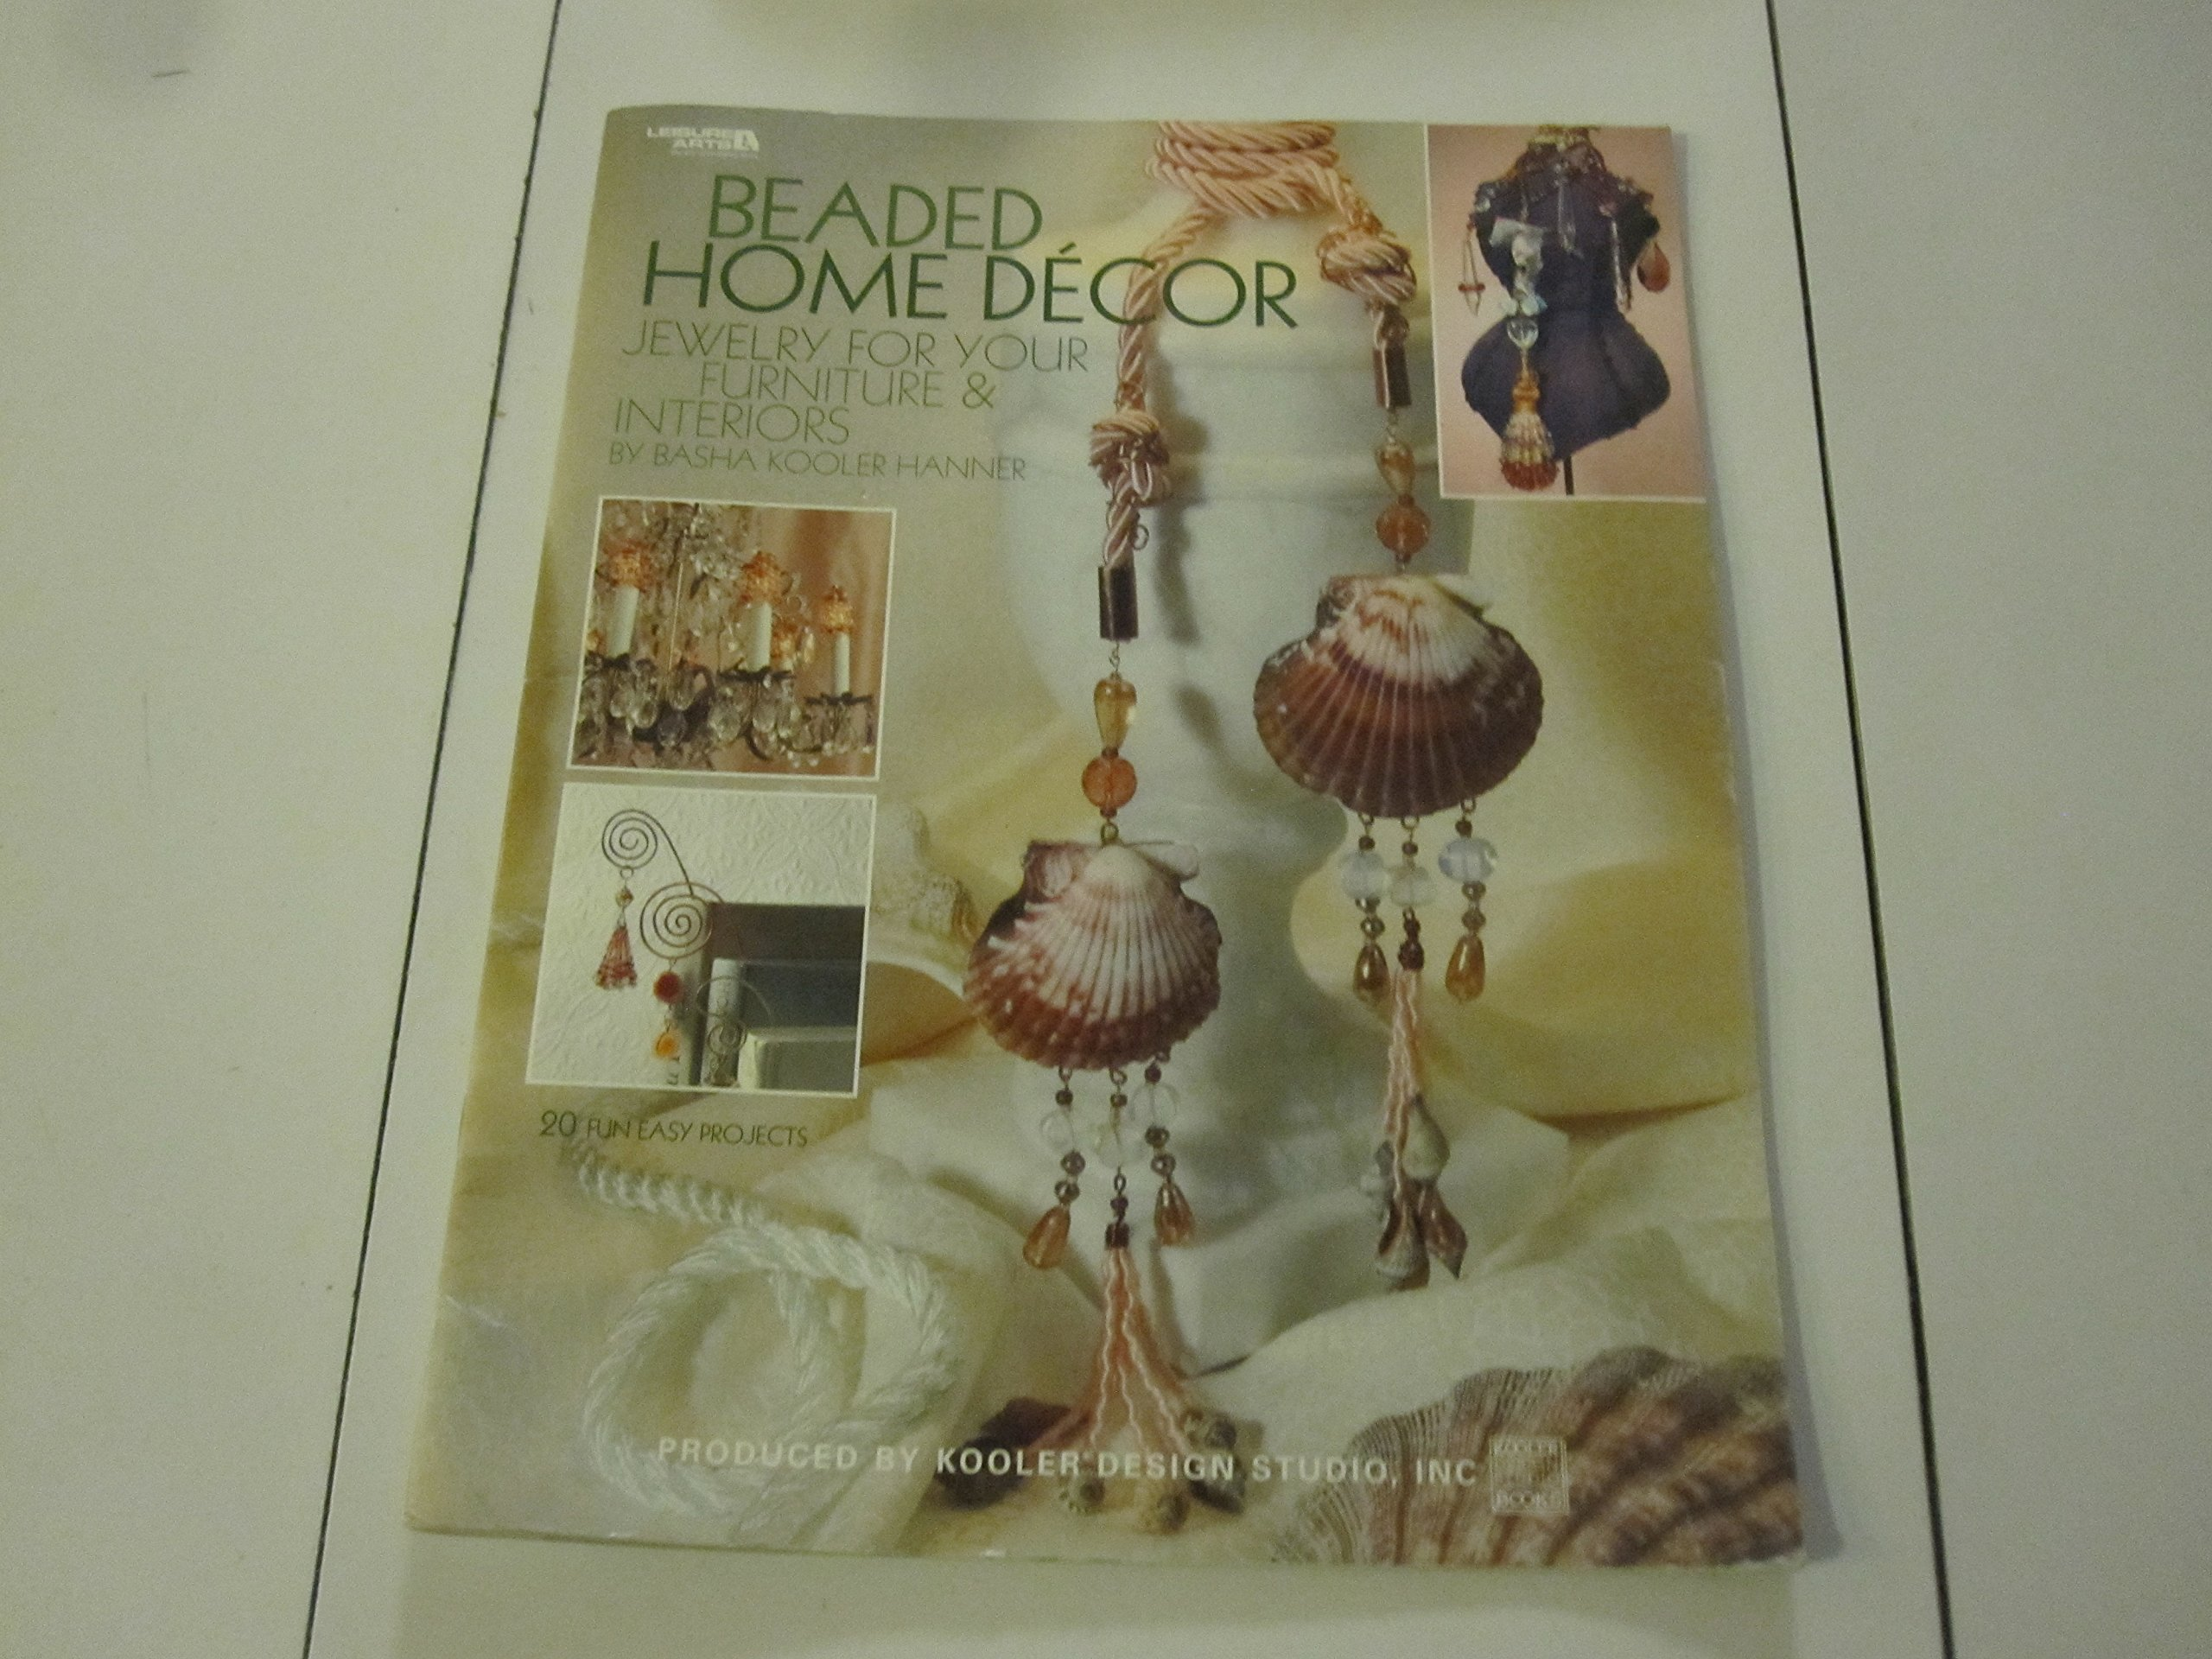 Beaded Home Decor: Jewelry for Your Furniture & Interiors (Leisure Arts, #3724)